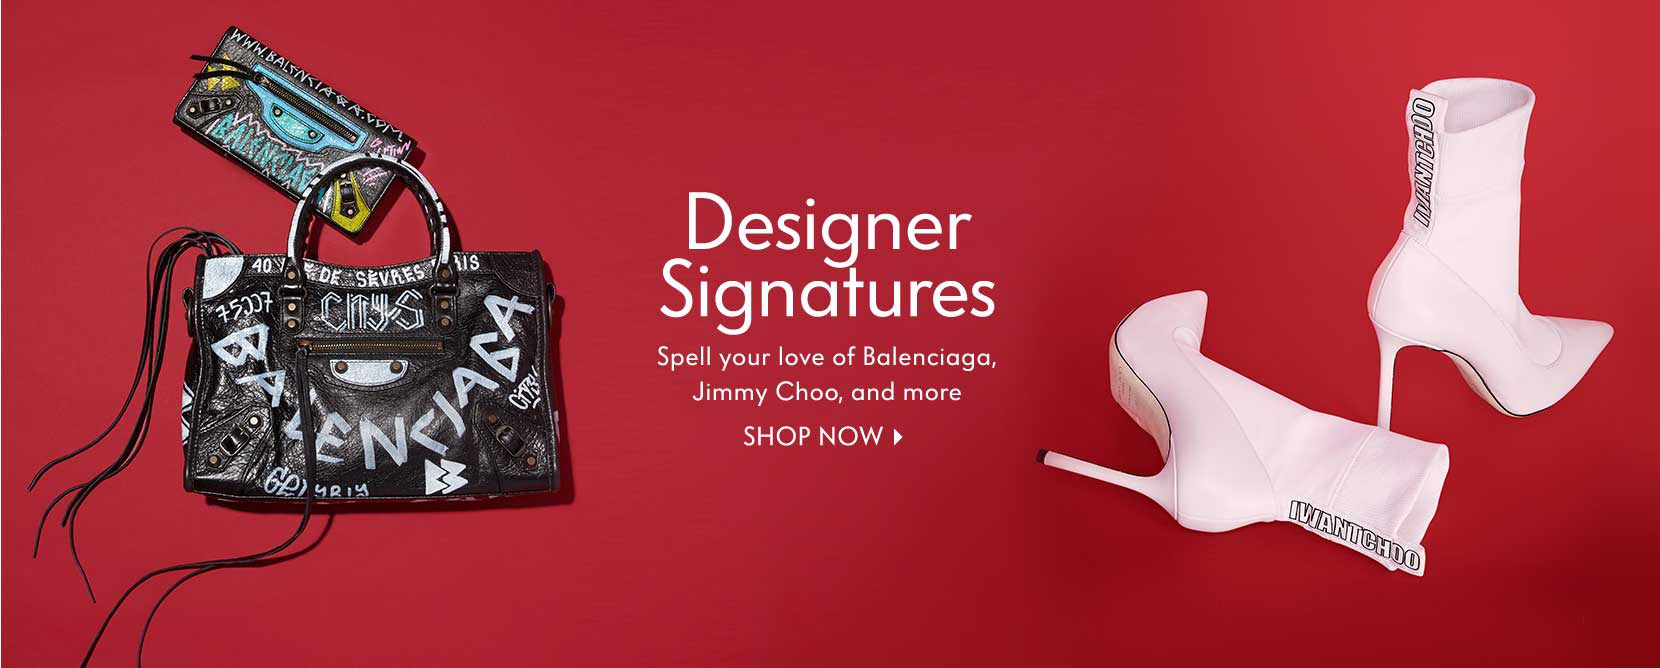 Designer Signatures - Spell your love of Balenciaga, Jimmy Choo, and more